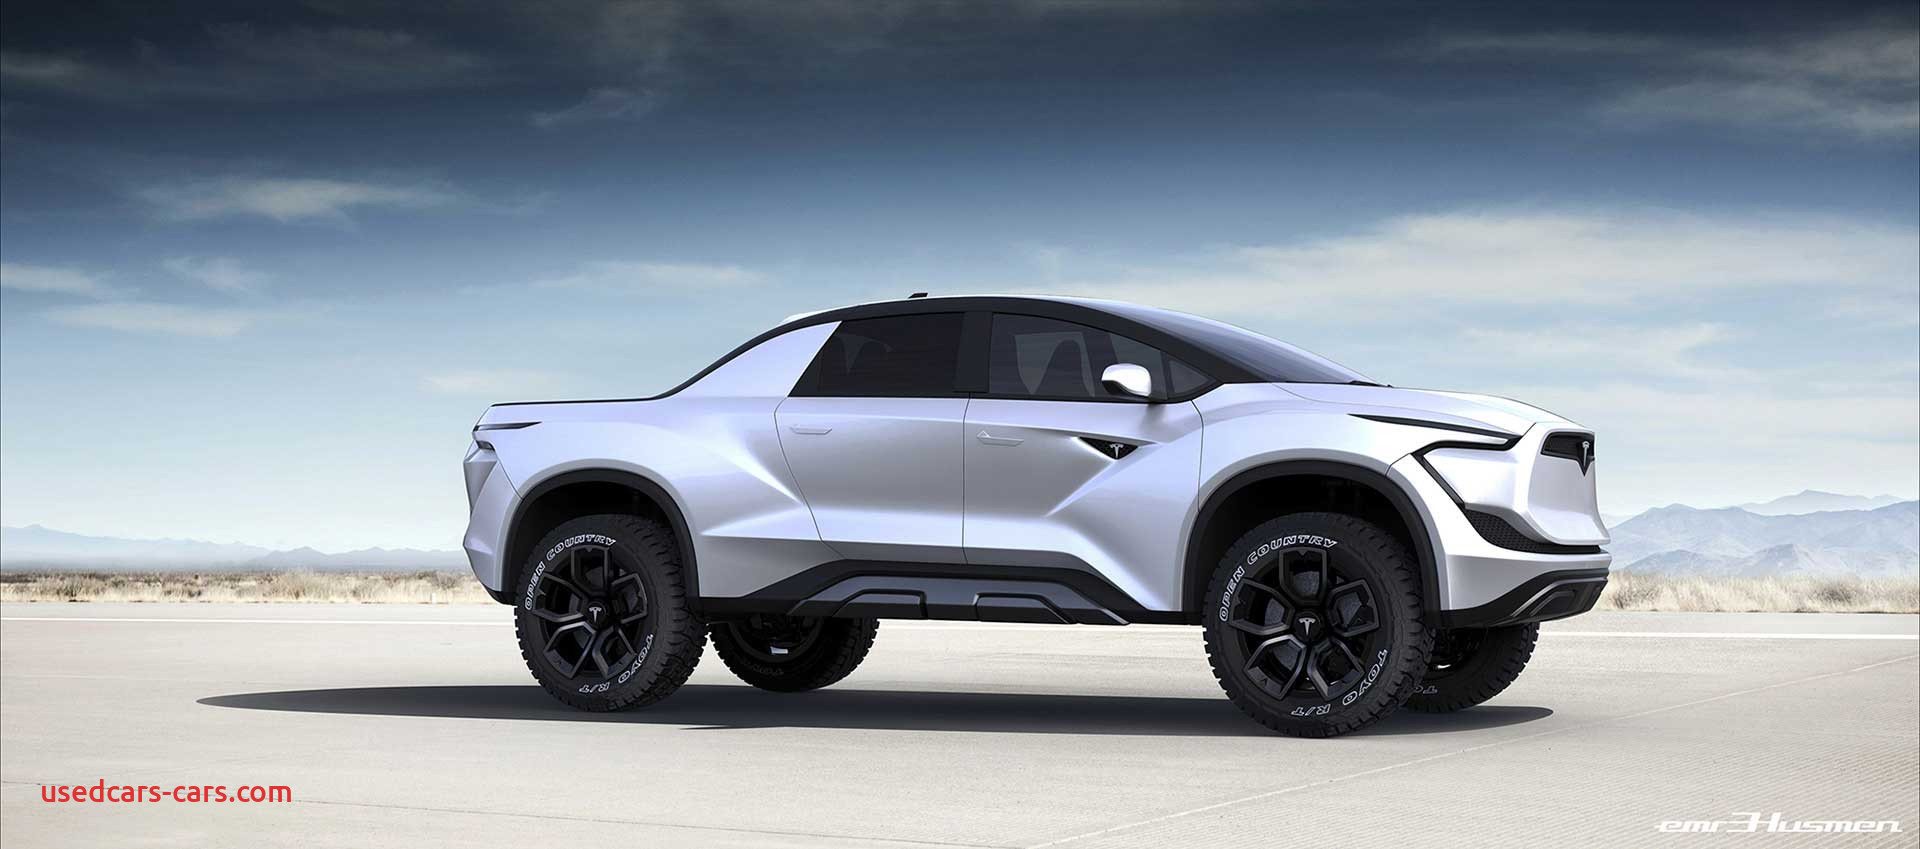 why the tesla ute may take cyberpunk to new level